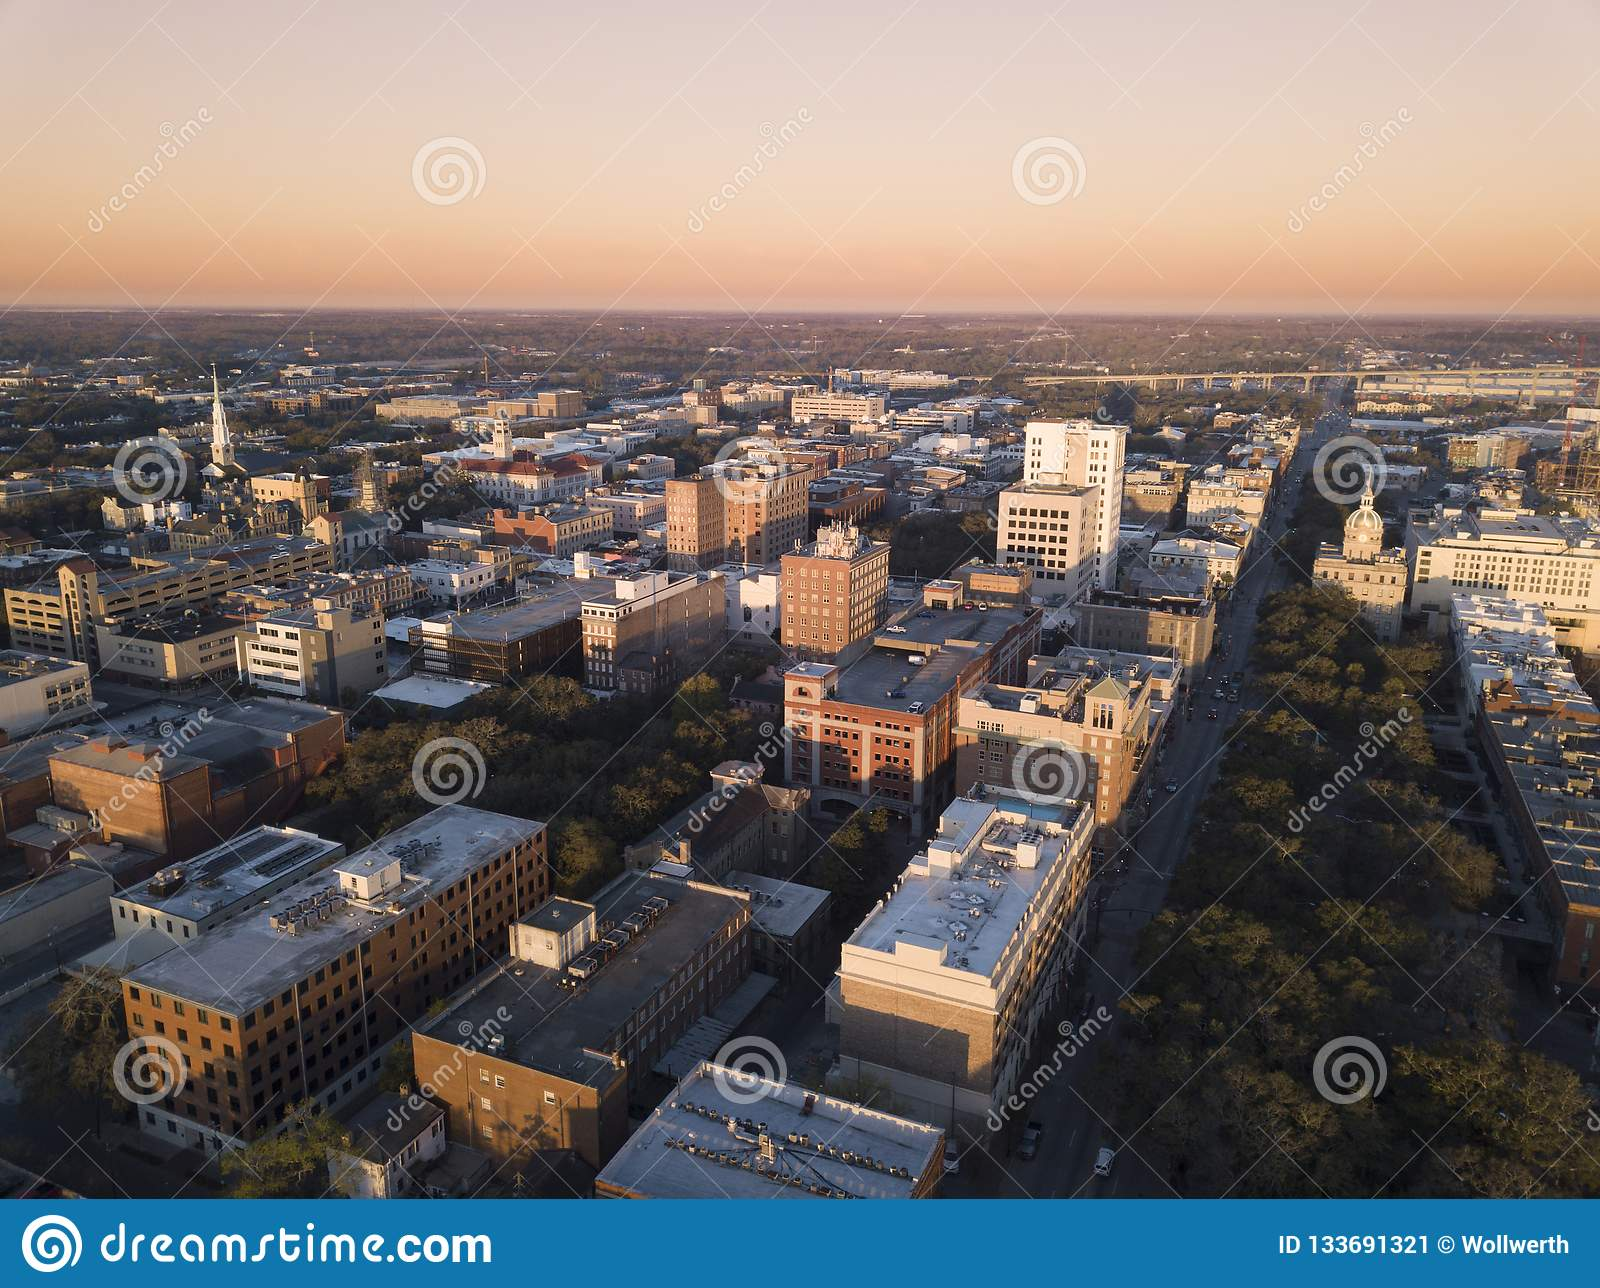 Aerial view of downtown Savannah Georgia at first light